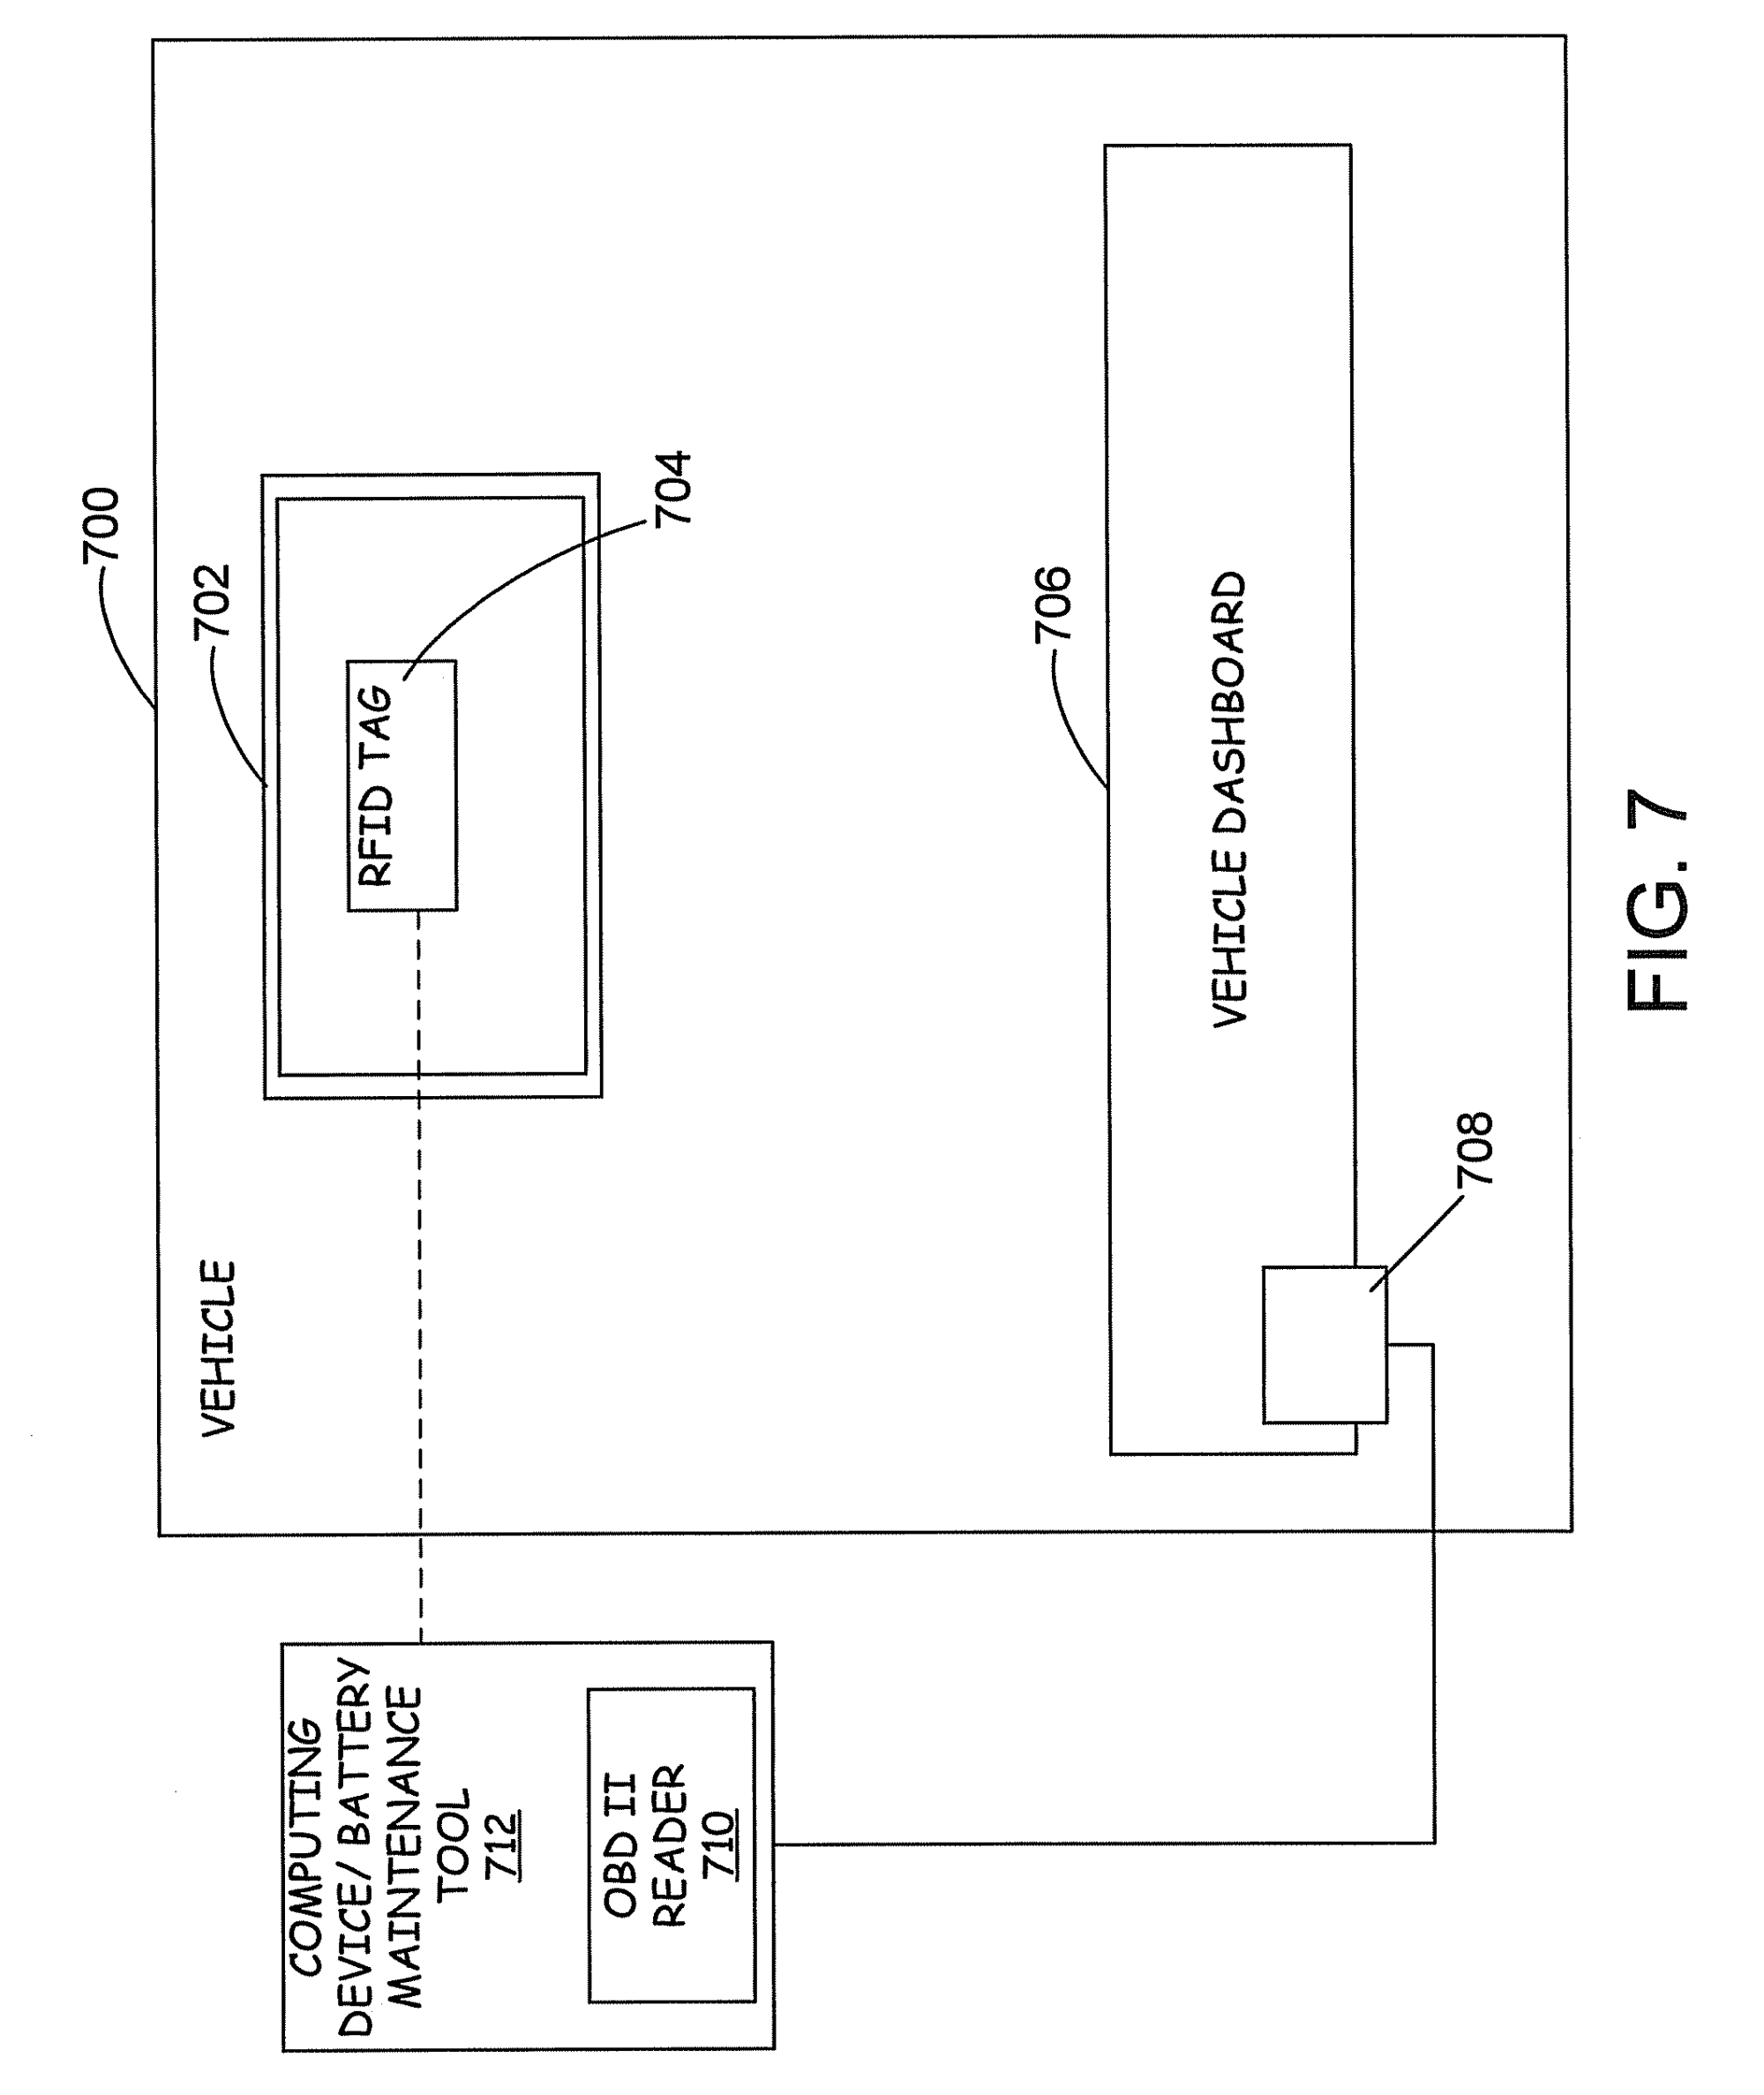 hight resolution of patent us 8 344 685 b2 on i goodall wiring diagram